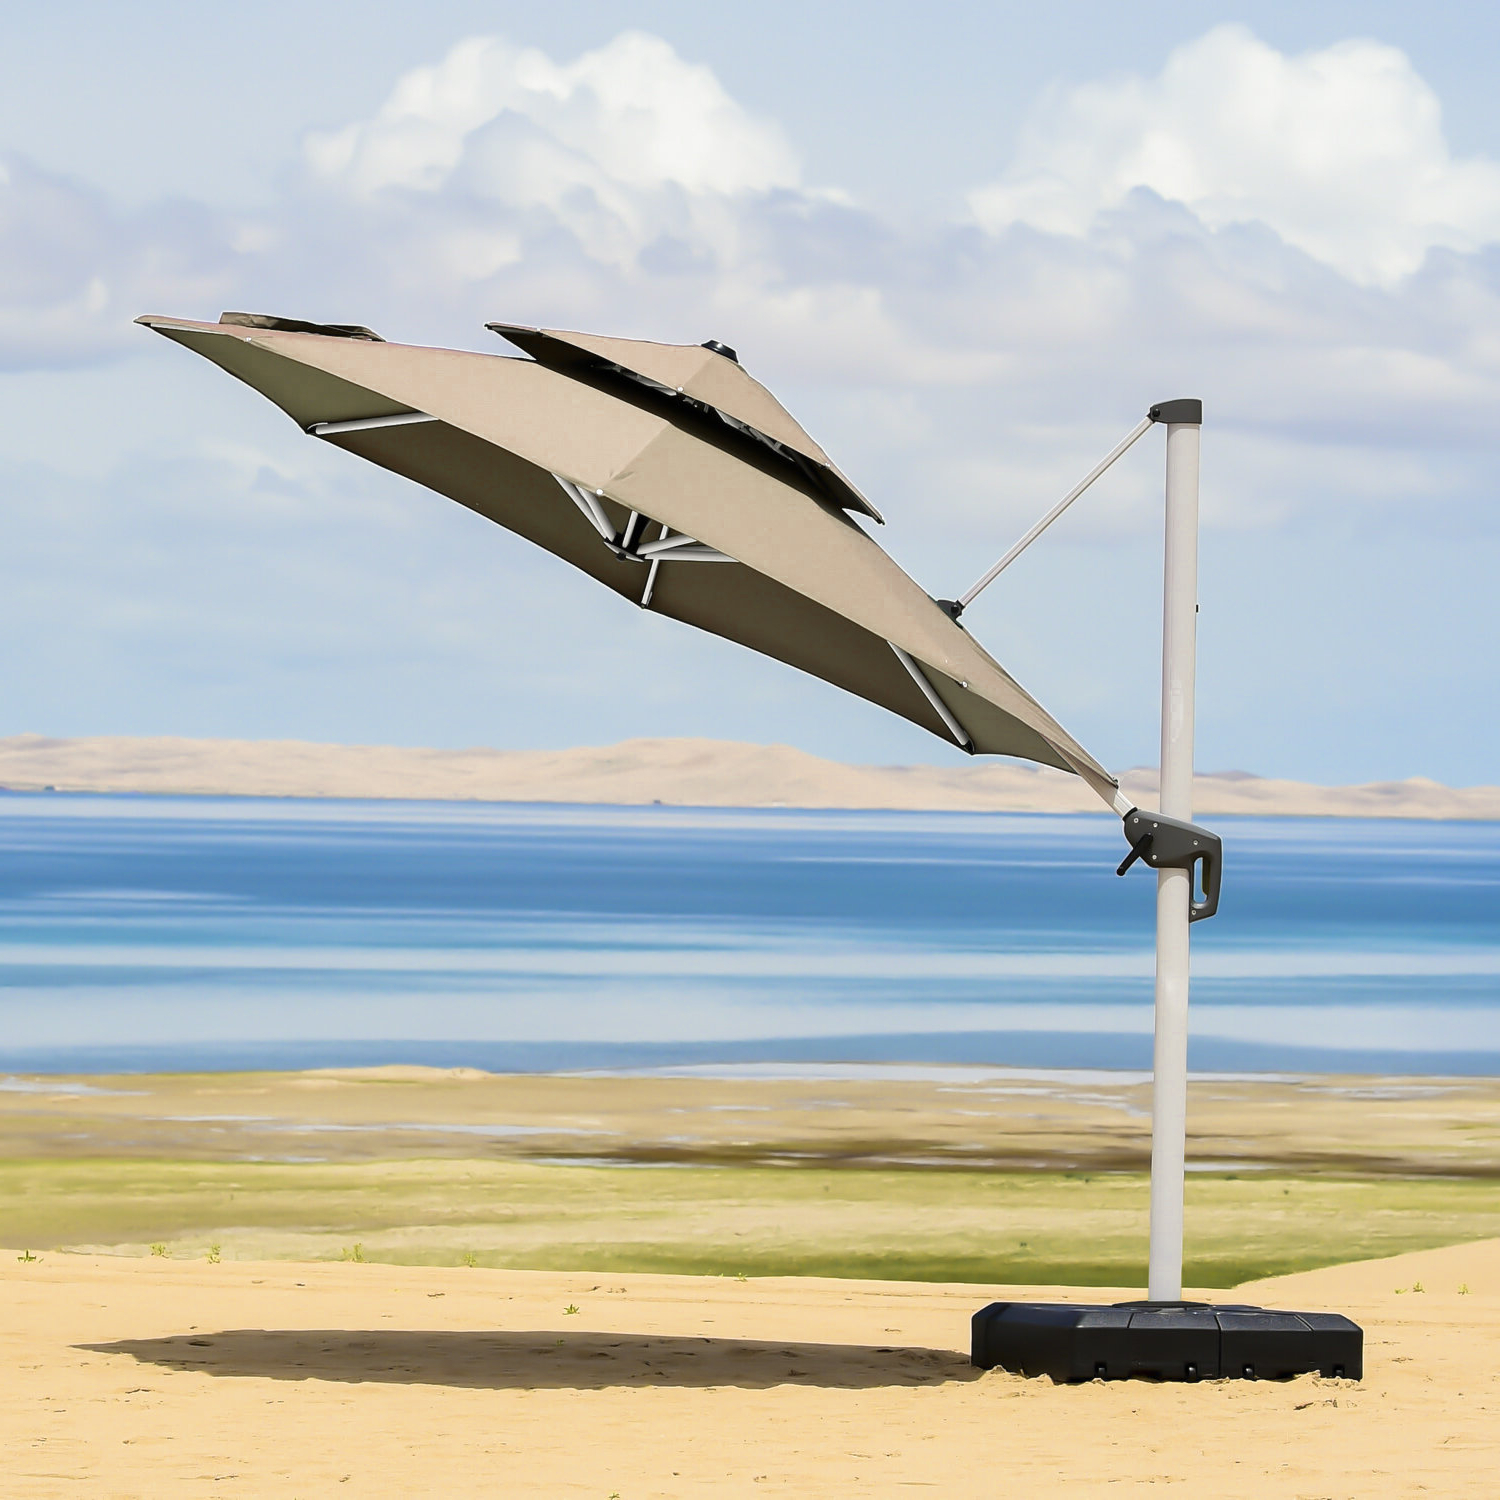 Voss Cantilever Sunbrella Umbrellas For Latest Mablethorpe 12' Cantilever Umbrella (View 17 of 20)